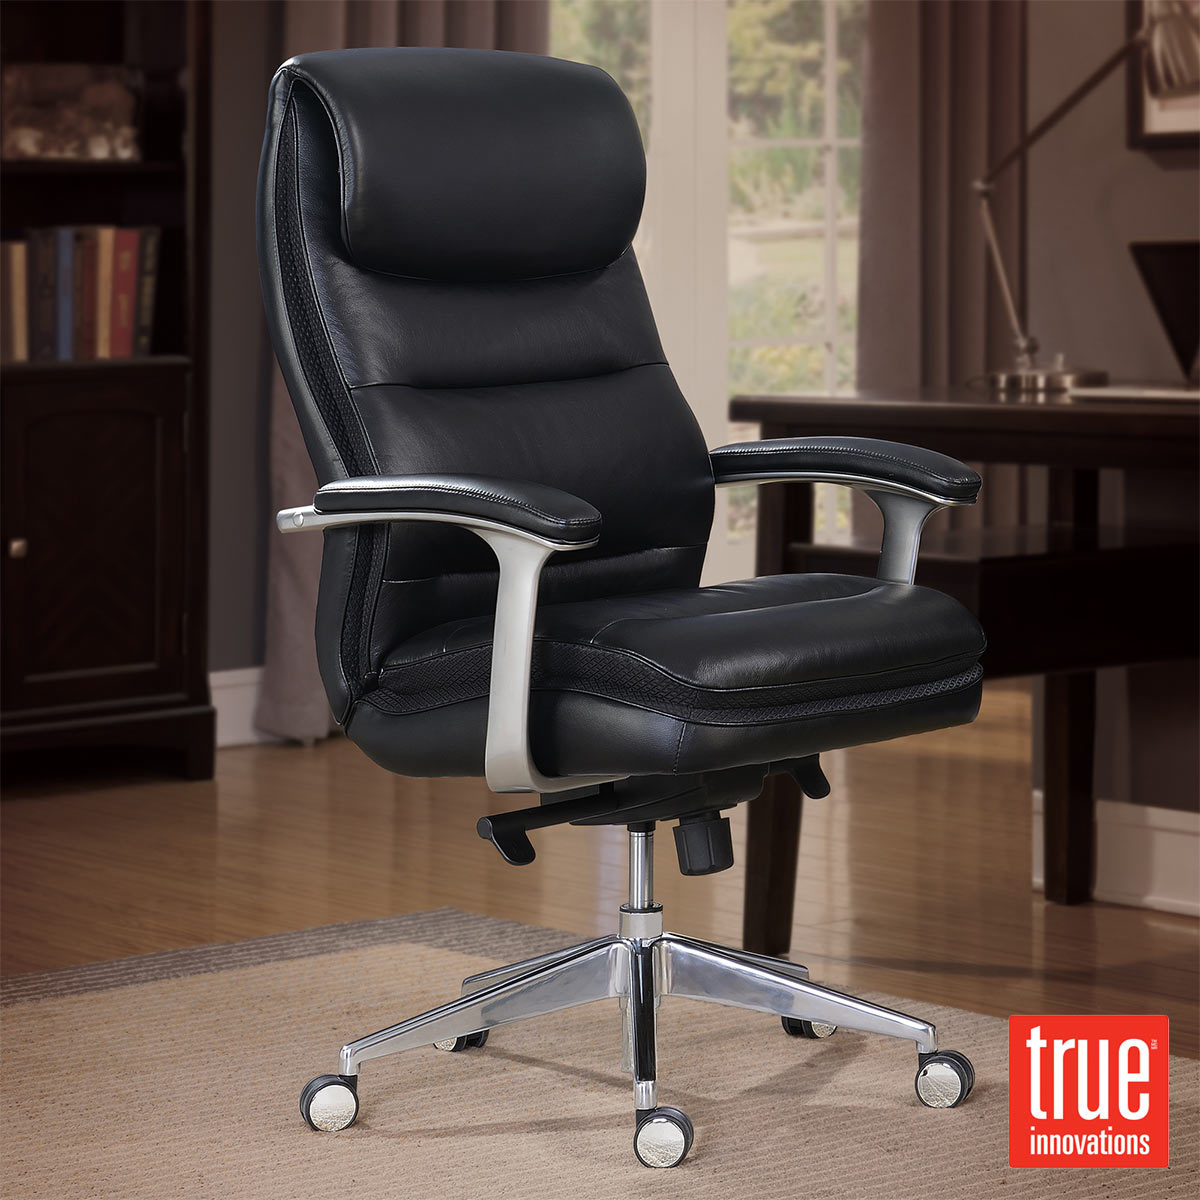 Costco Office Chairs In Store True Innovations Leather Executive Chair Costco Uk